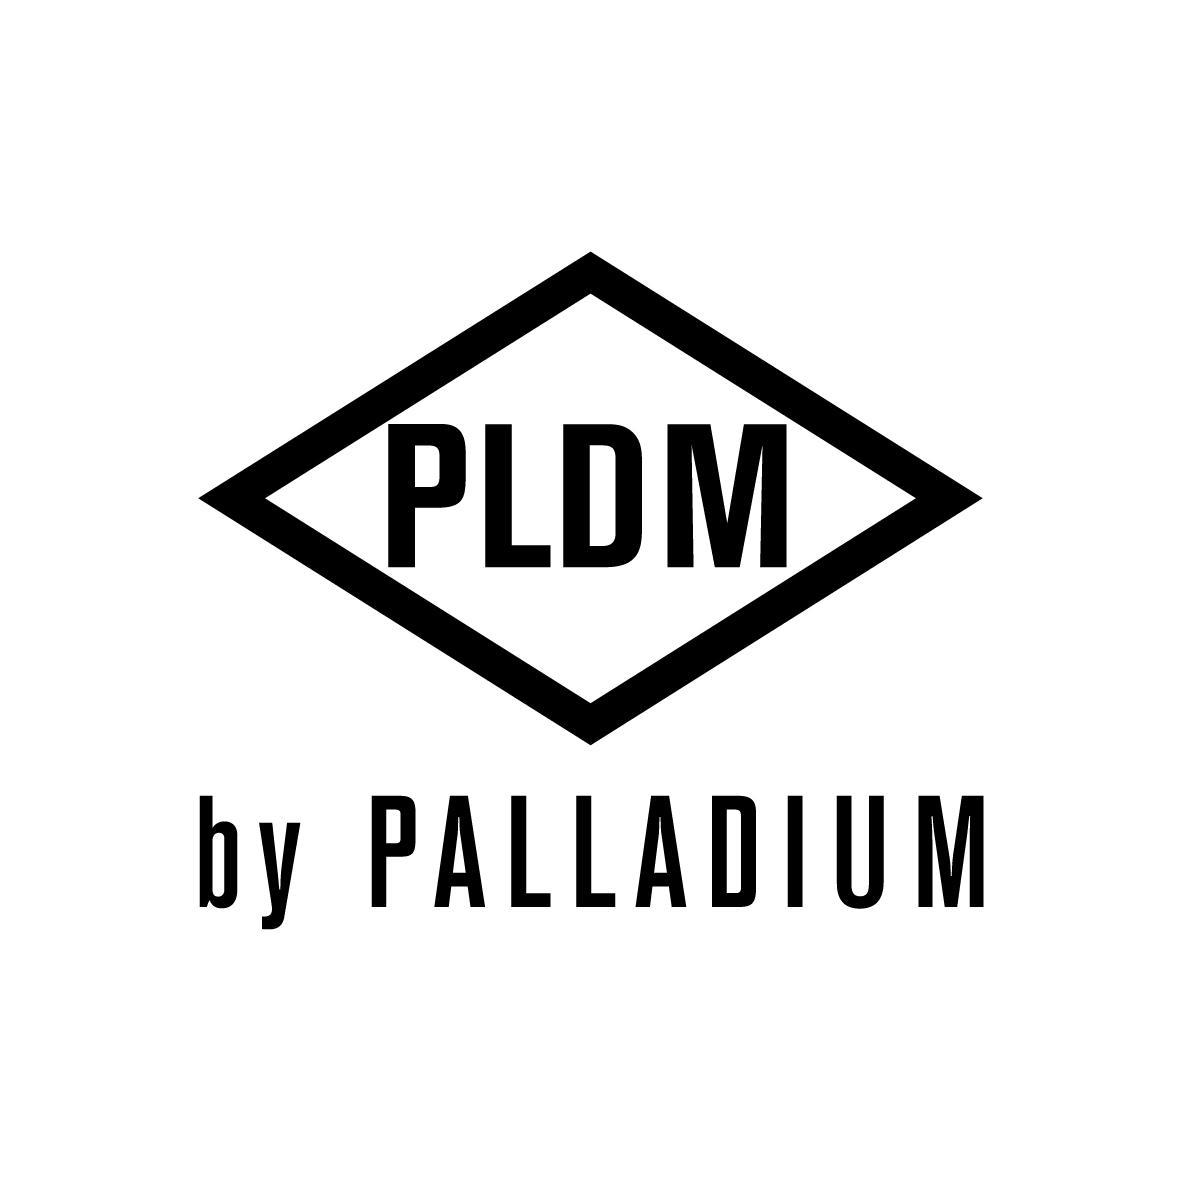 logo PLDM by PALLADIUM